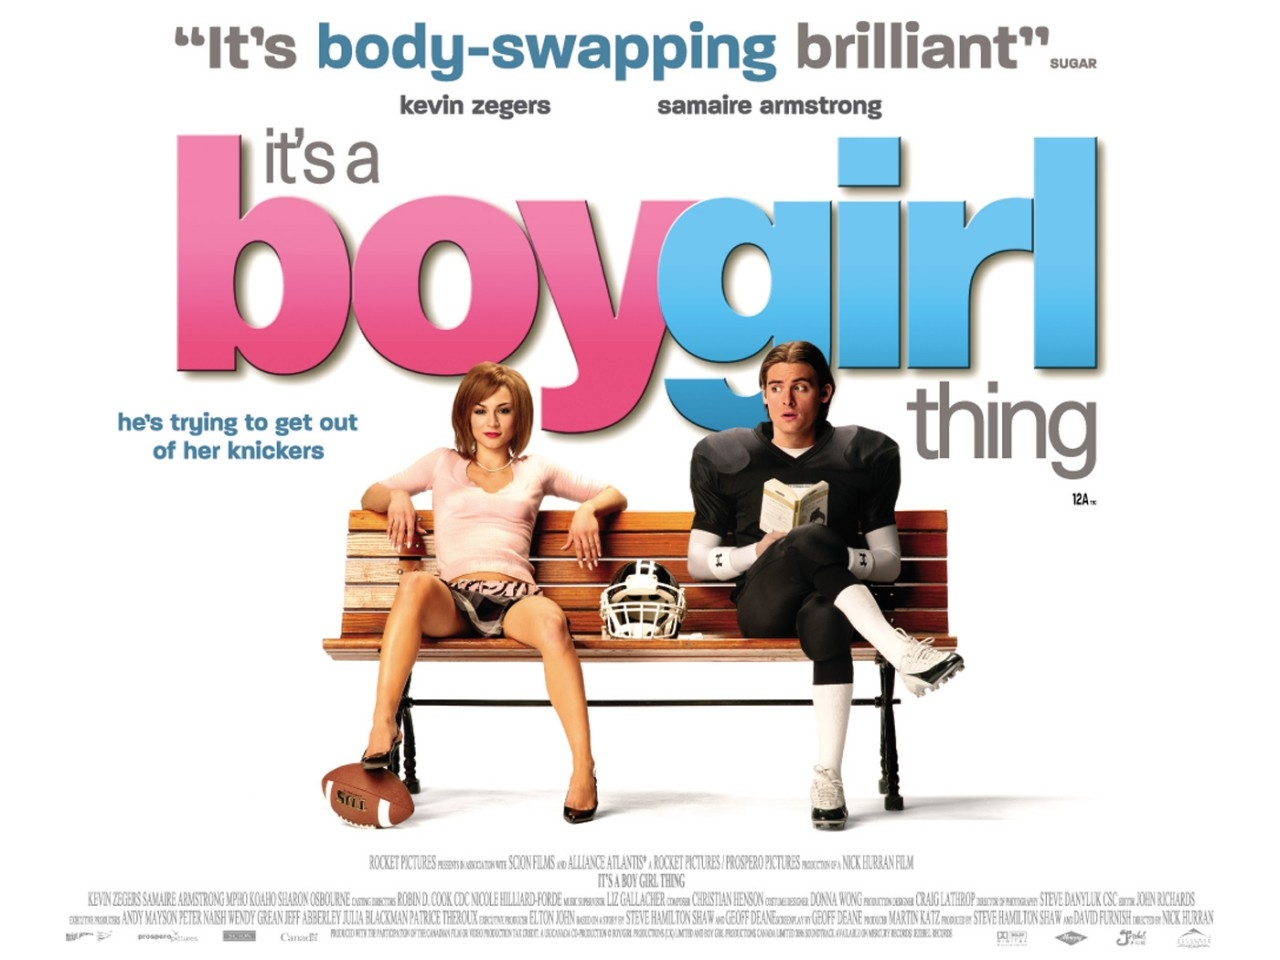 Wallpaper del film Boygirl - Questione di sesso